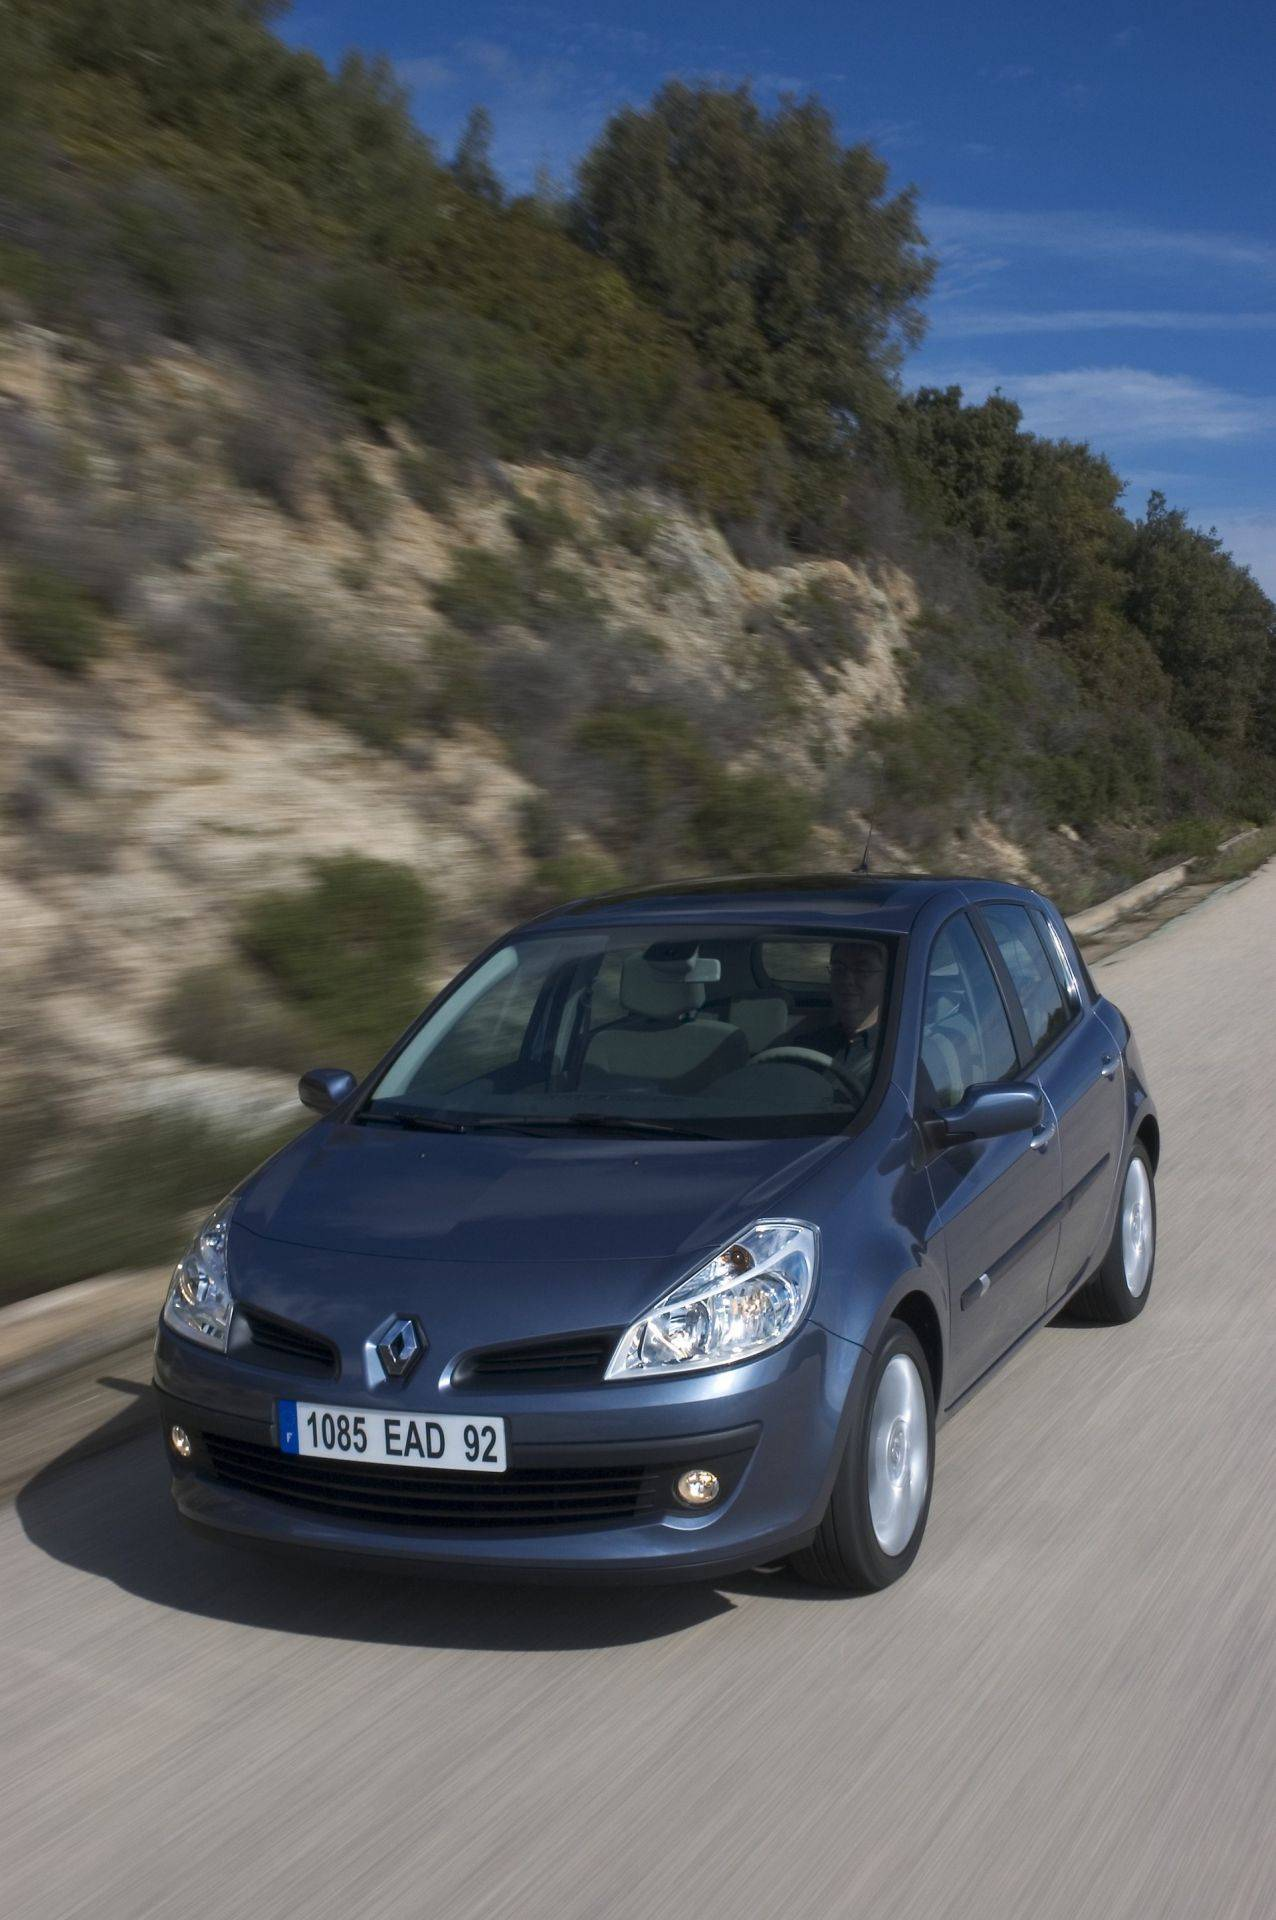 2020-30-years-of-Renault-CLIO-Renault-CLIO-III-2005-2012-2